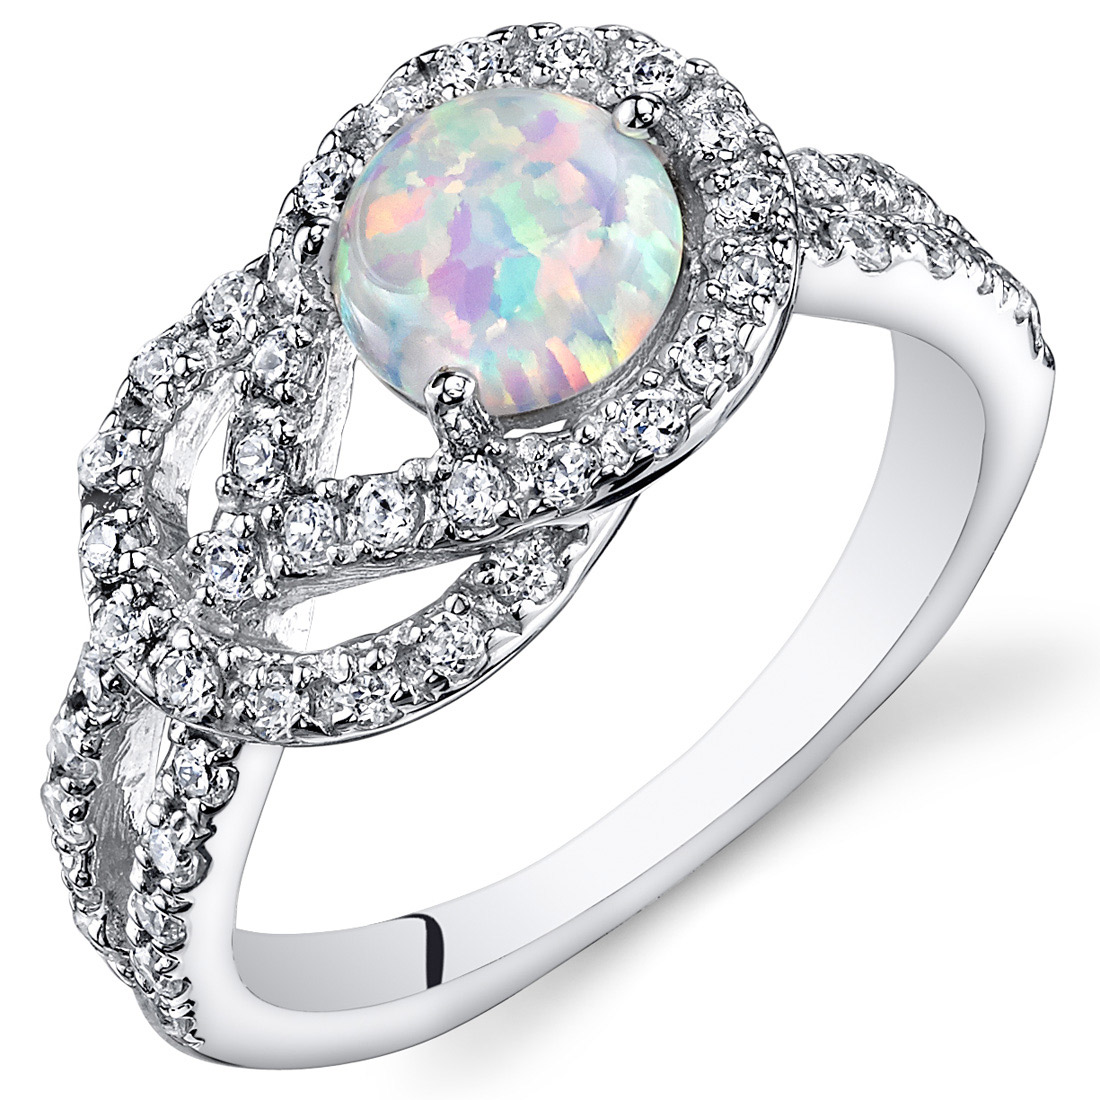 Peora 0.75 Created Opal Engagement Ring in Rhodium-Plated Sterling Silver